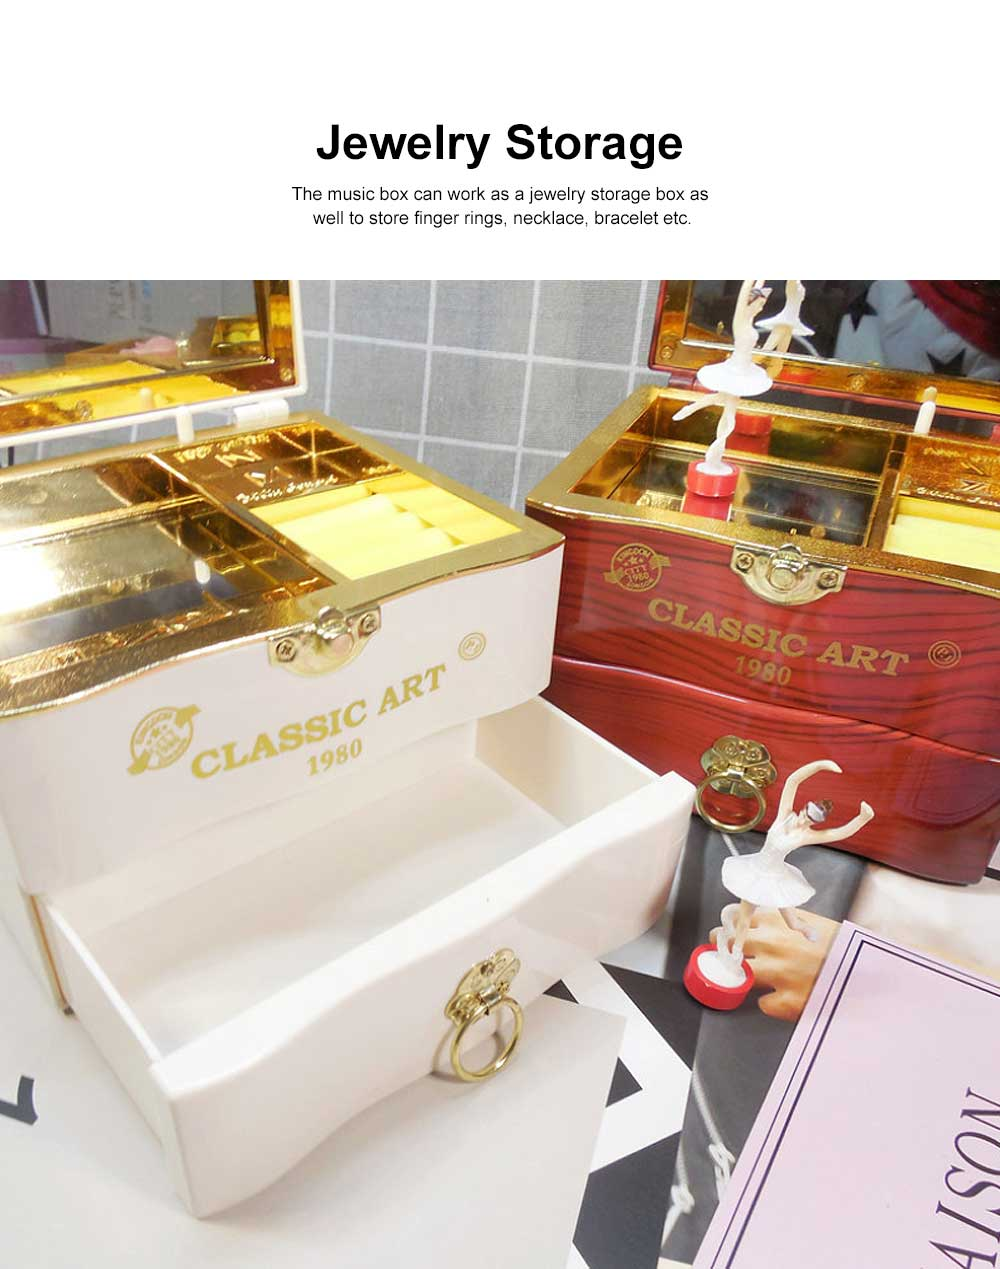 Classic Retro Style Dancing Girl Musical Box as Gift for Children or Girls, Clockwork Musical Box Creative Storage Box with Playing Music Jewelry 5